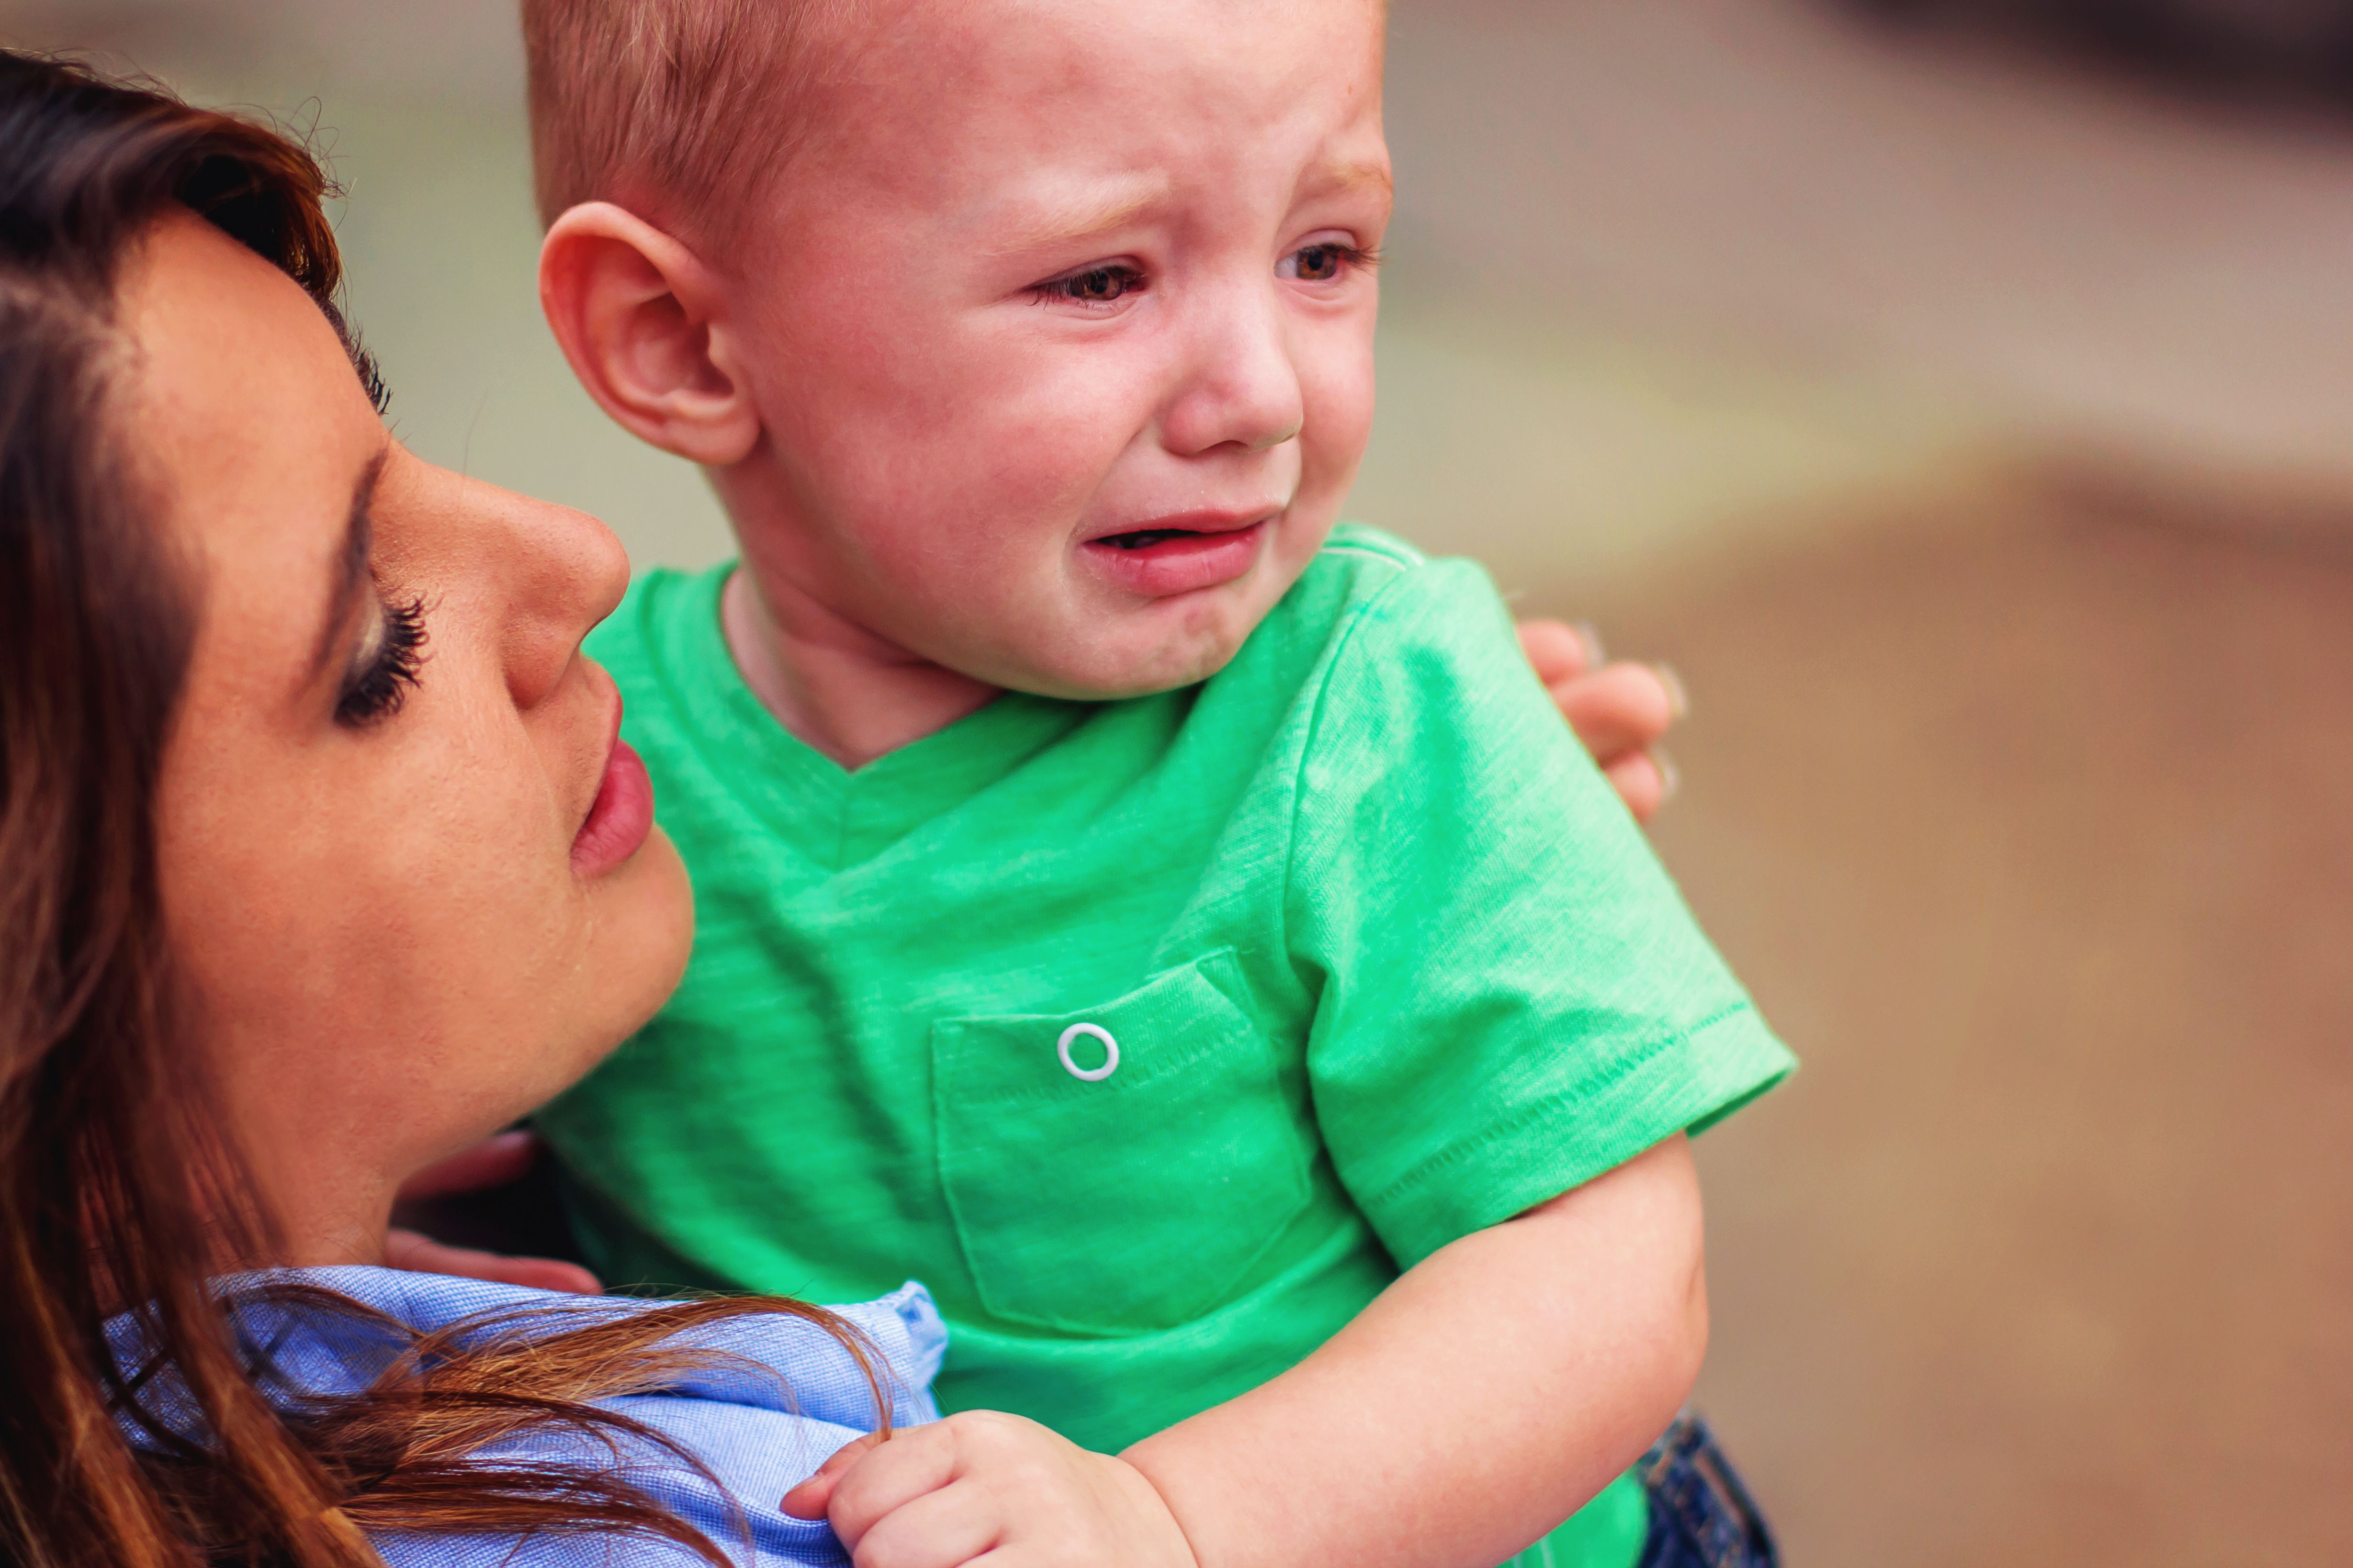 A woman holding a crying baby. │ Source: Shutterstock